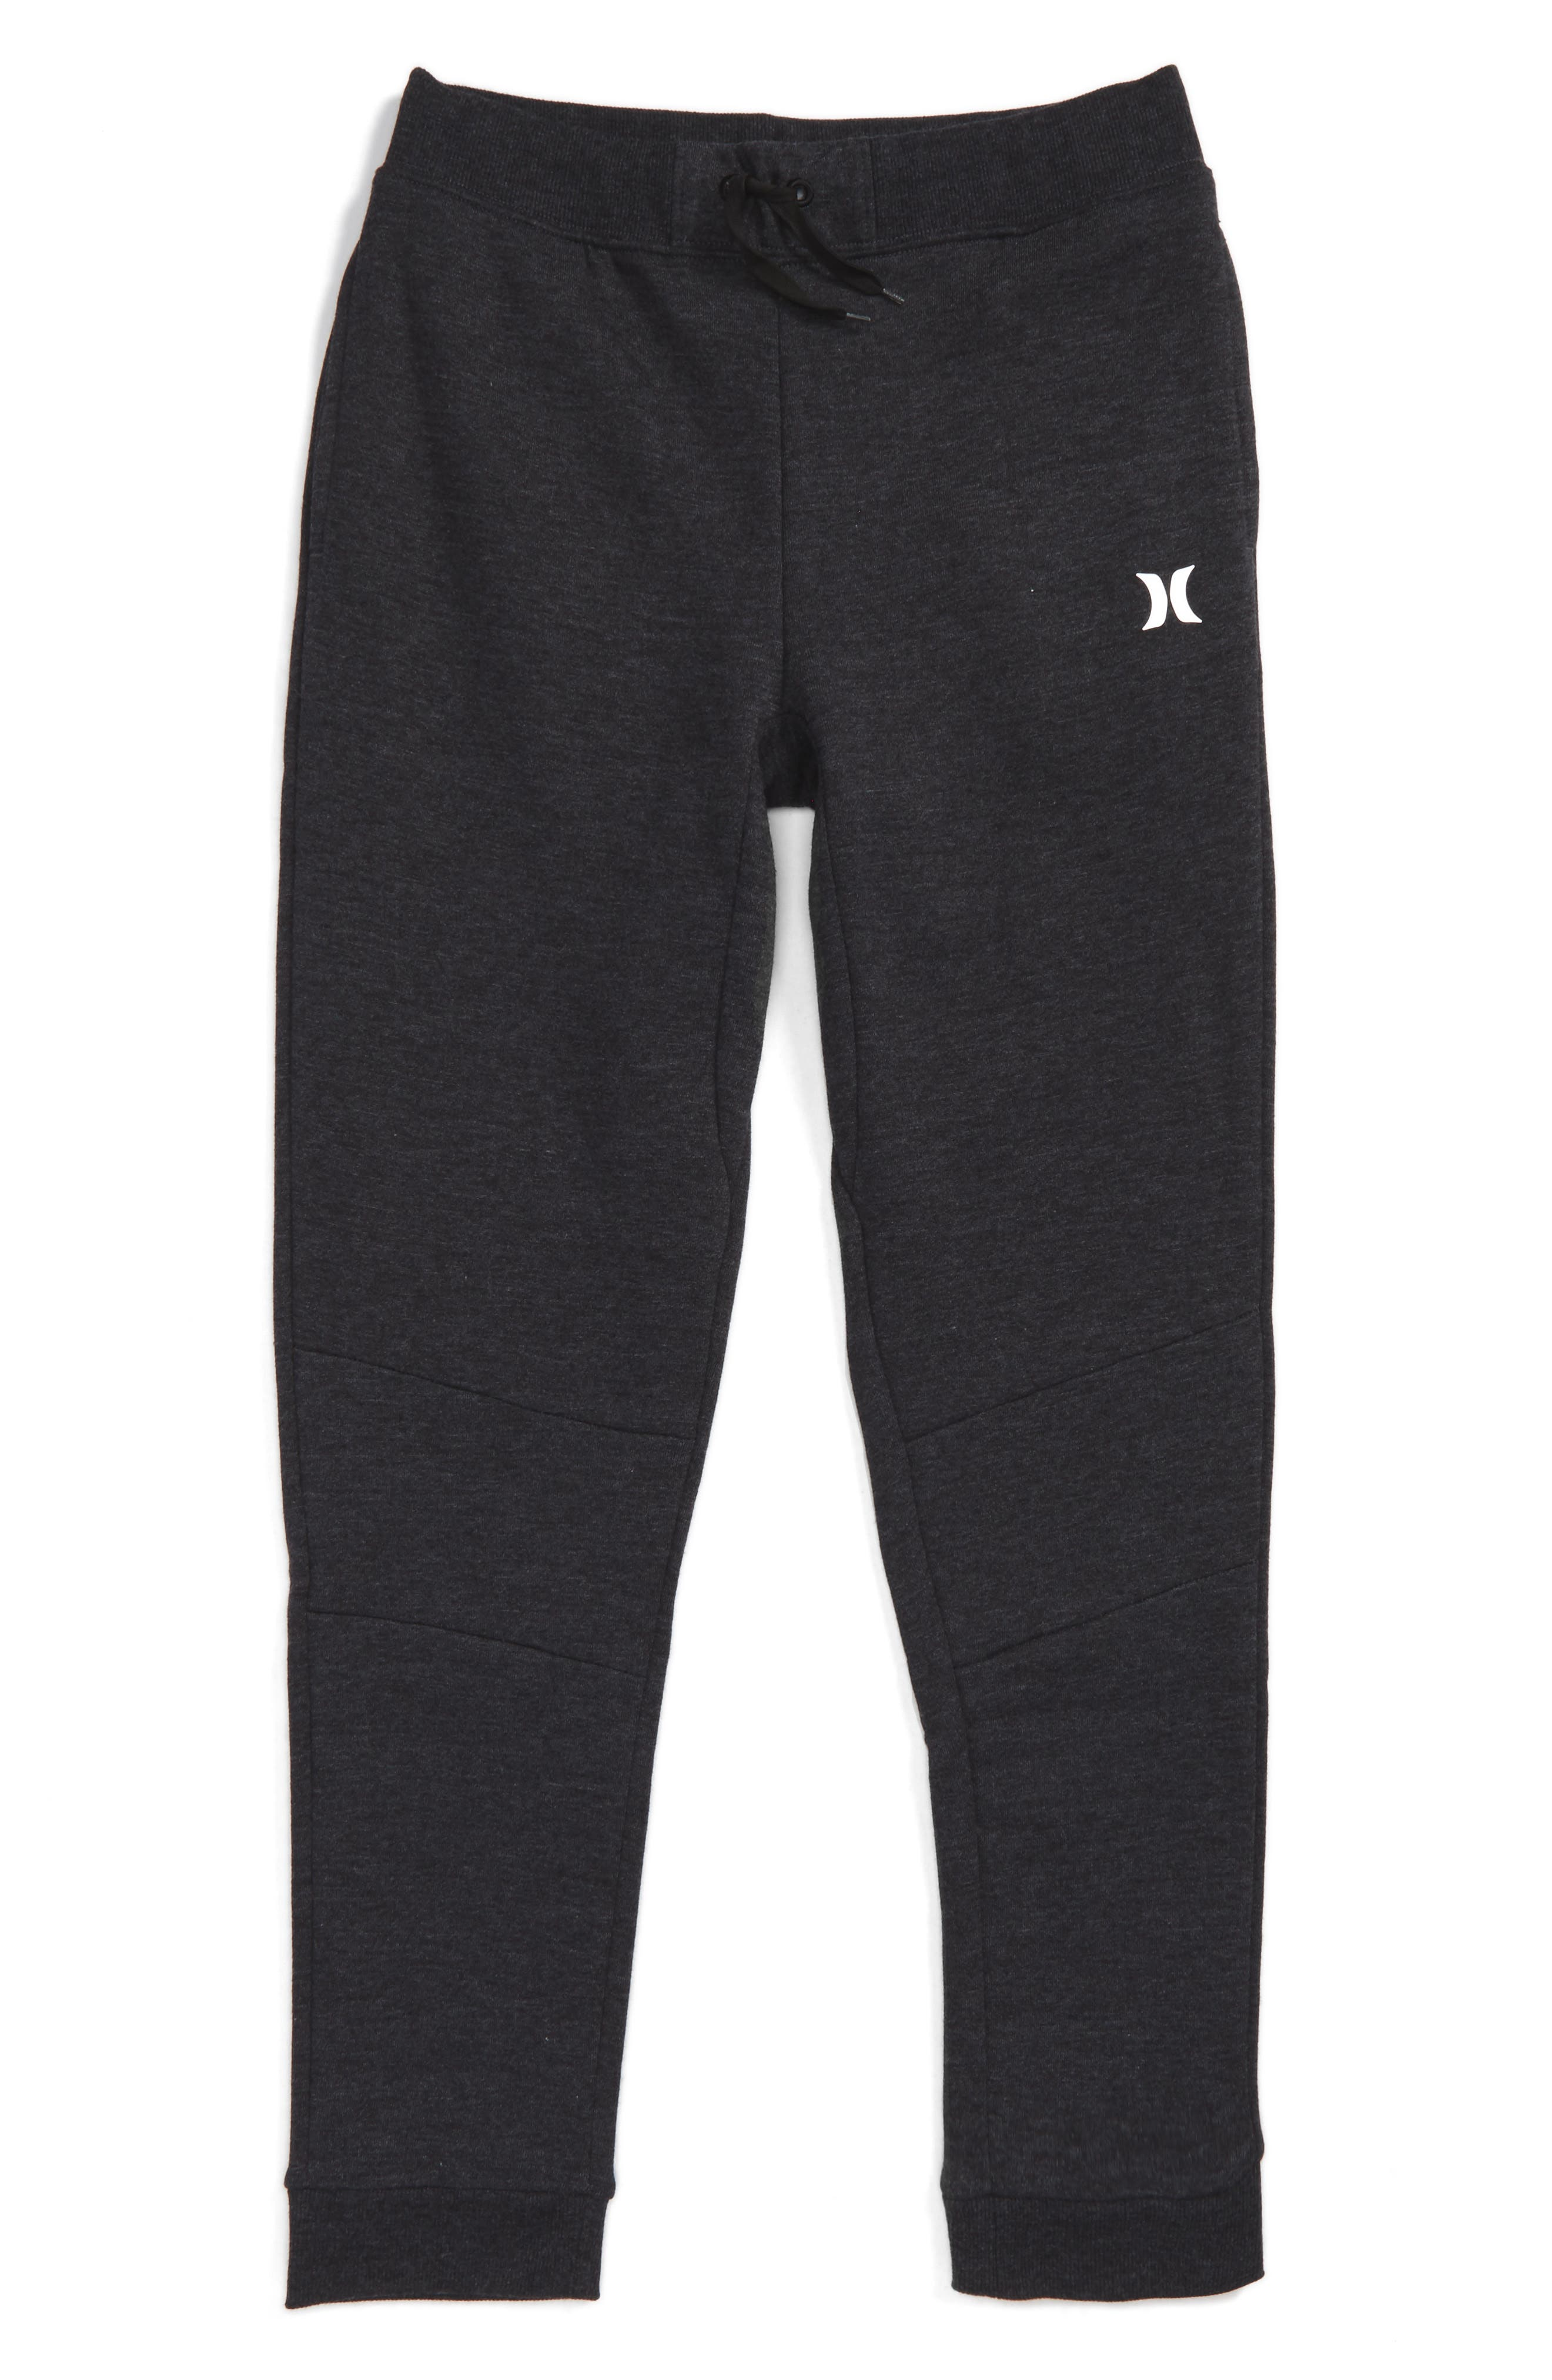 Getaway Fleece Sweatpants,                             Main thumbnail 1, color,                             006